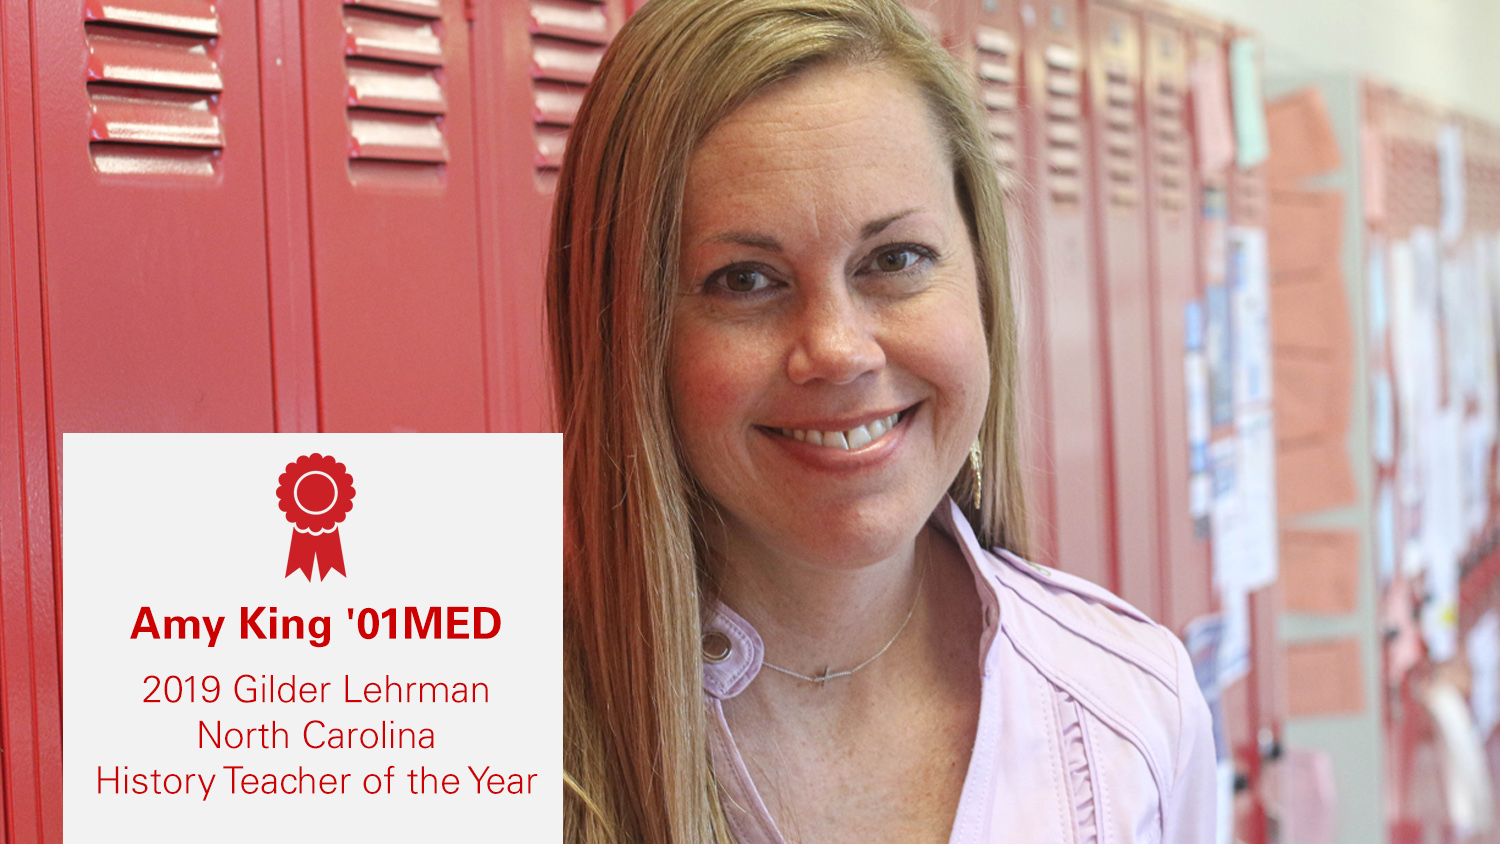 Amy King '01MED won N.C. History Teacher of the Year